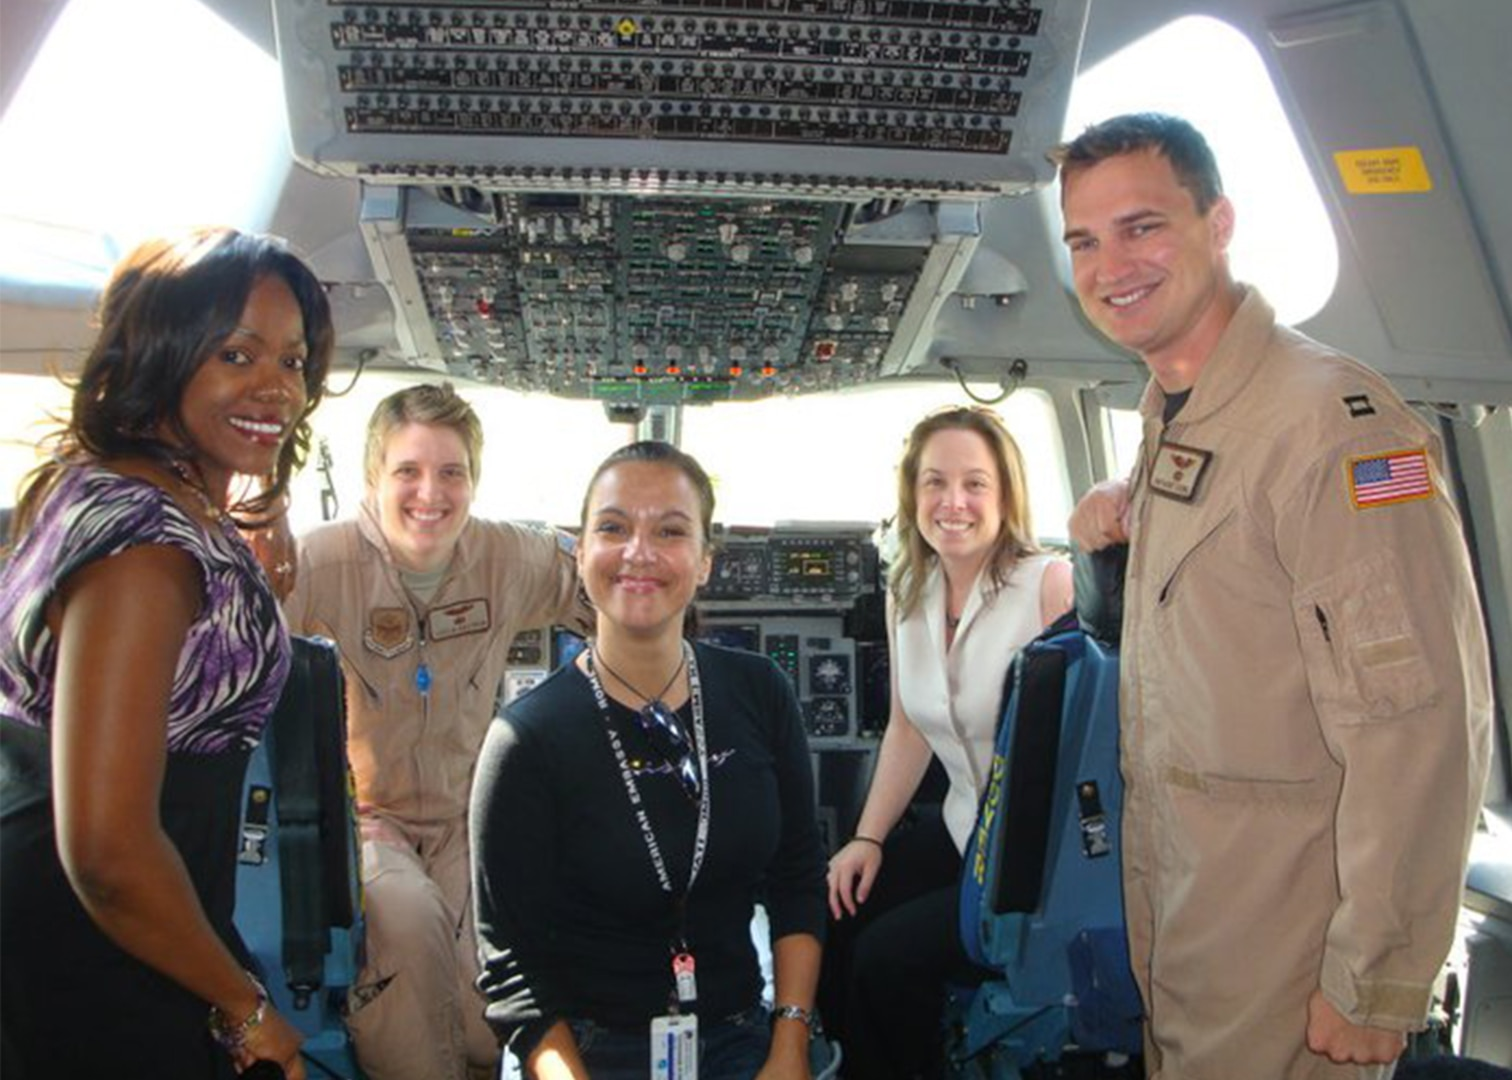 DAS members in a military aircraft cockpit while on assignment.